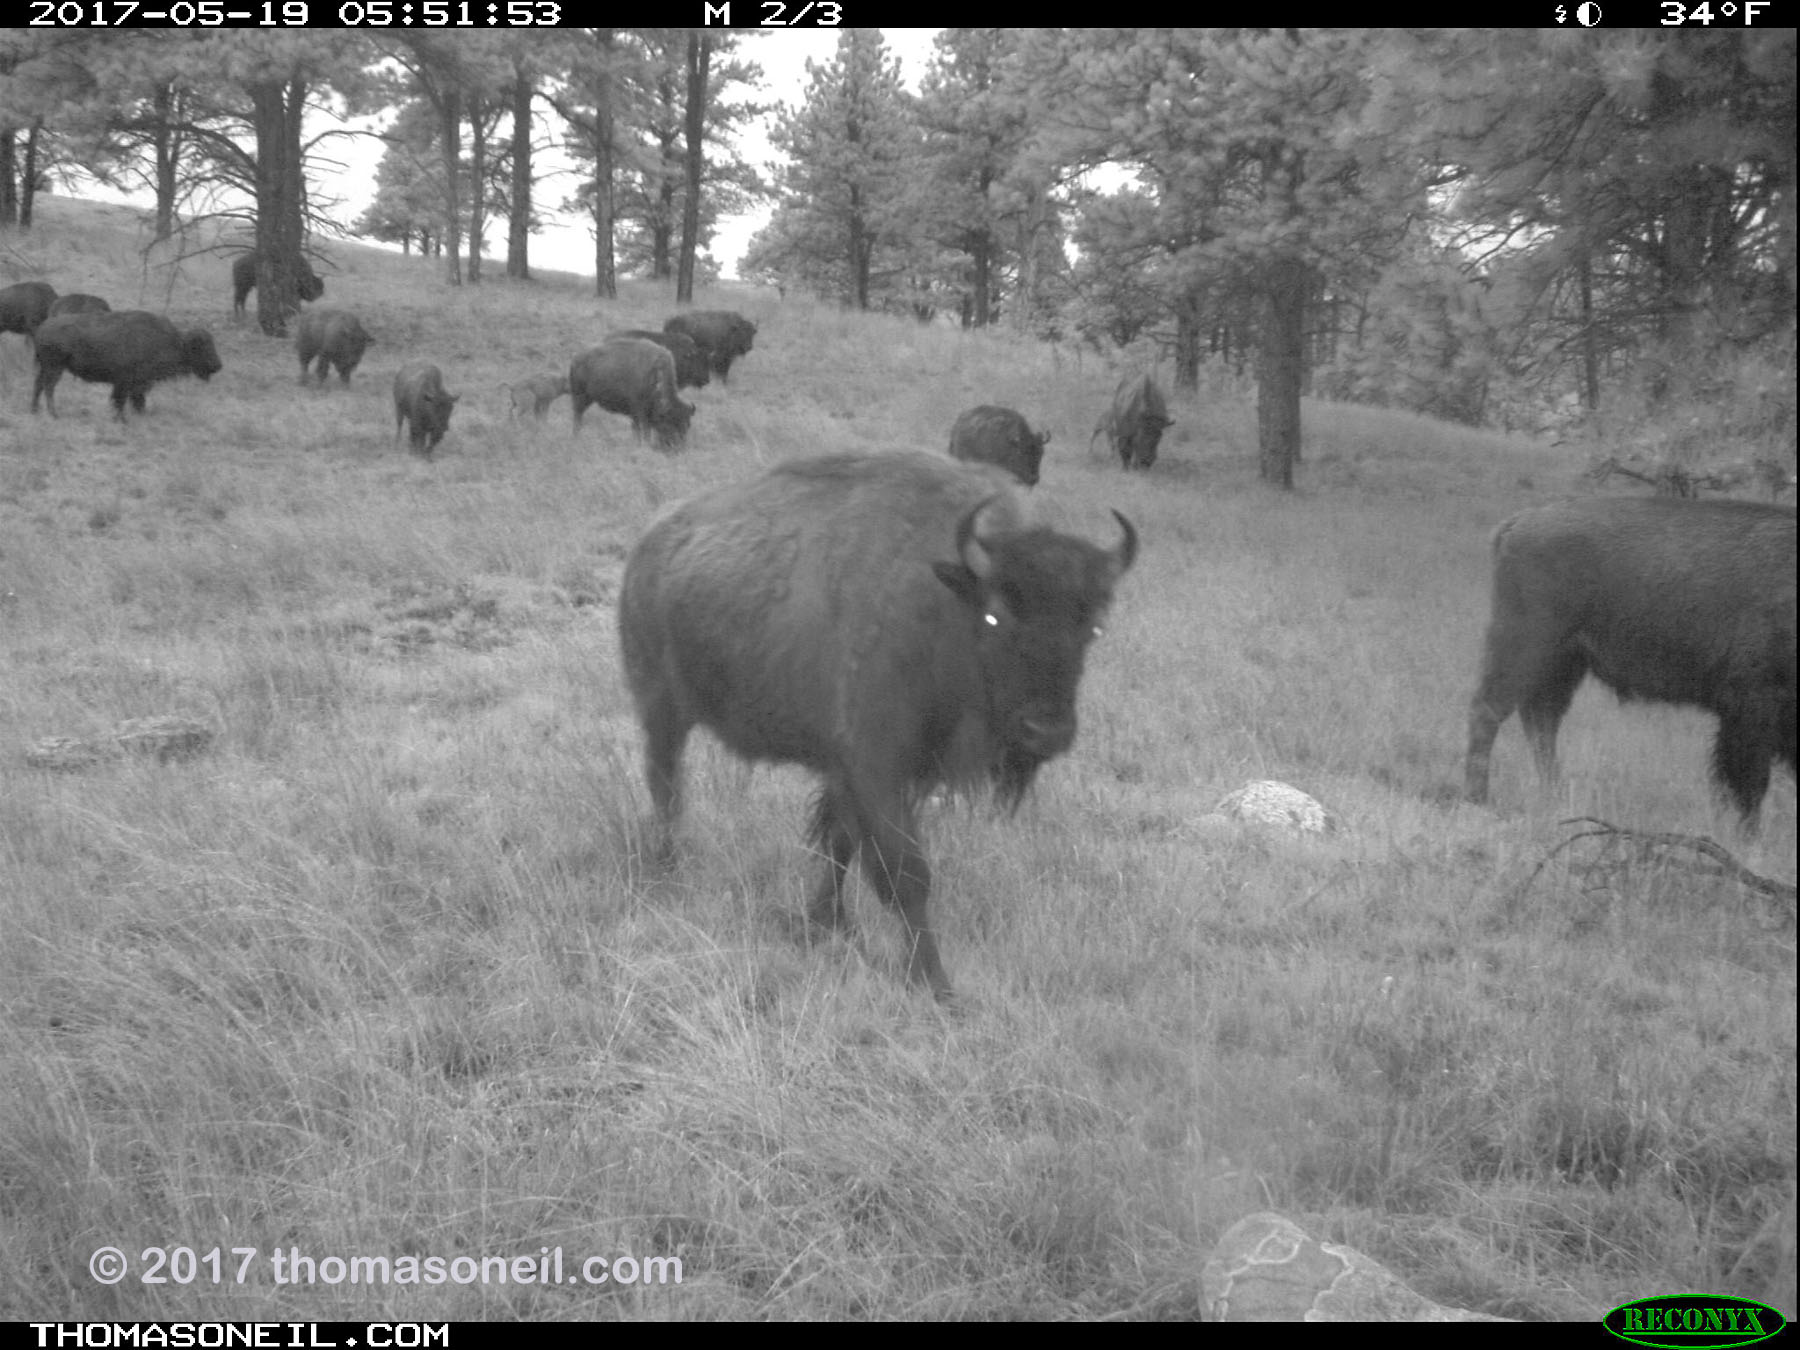 Bison passing in the predawn hours, May 19, 2017.